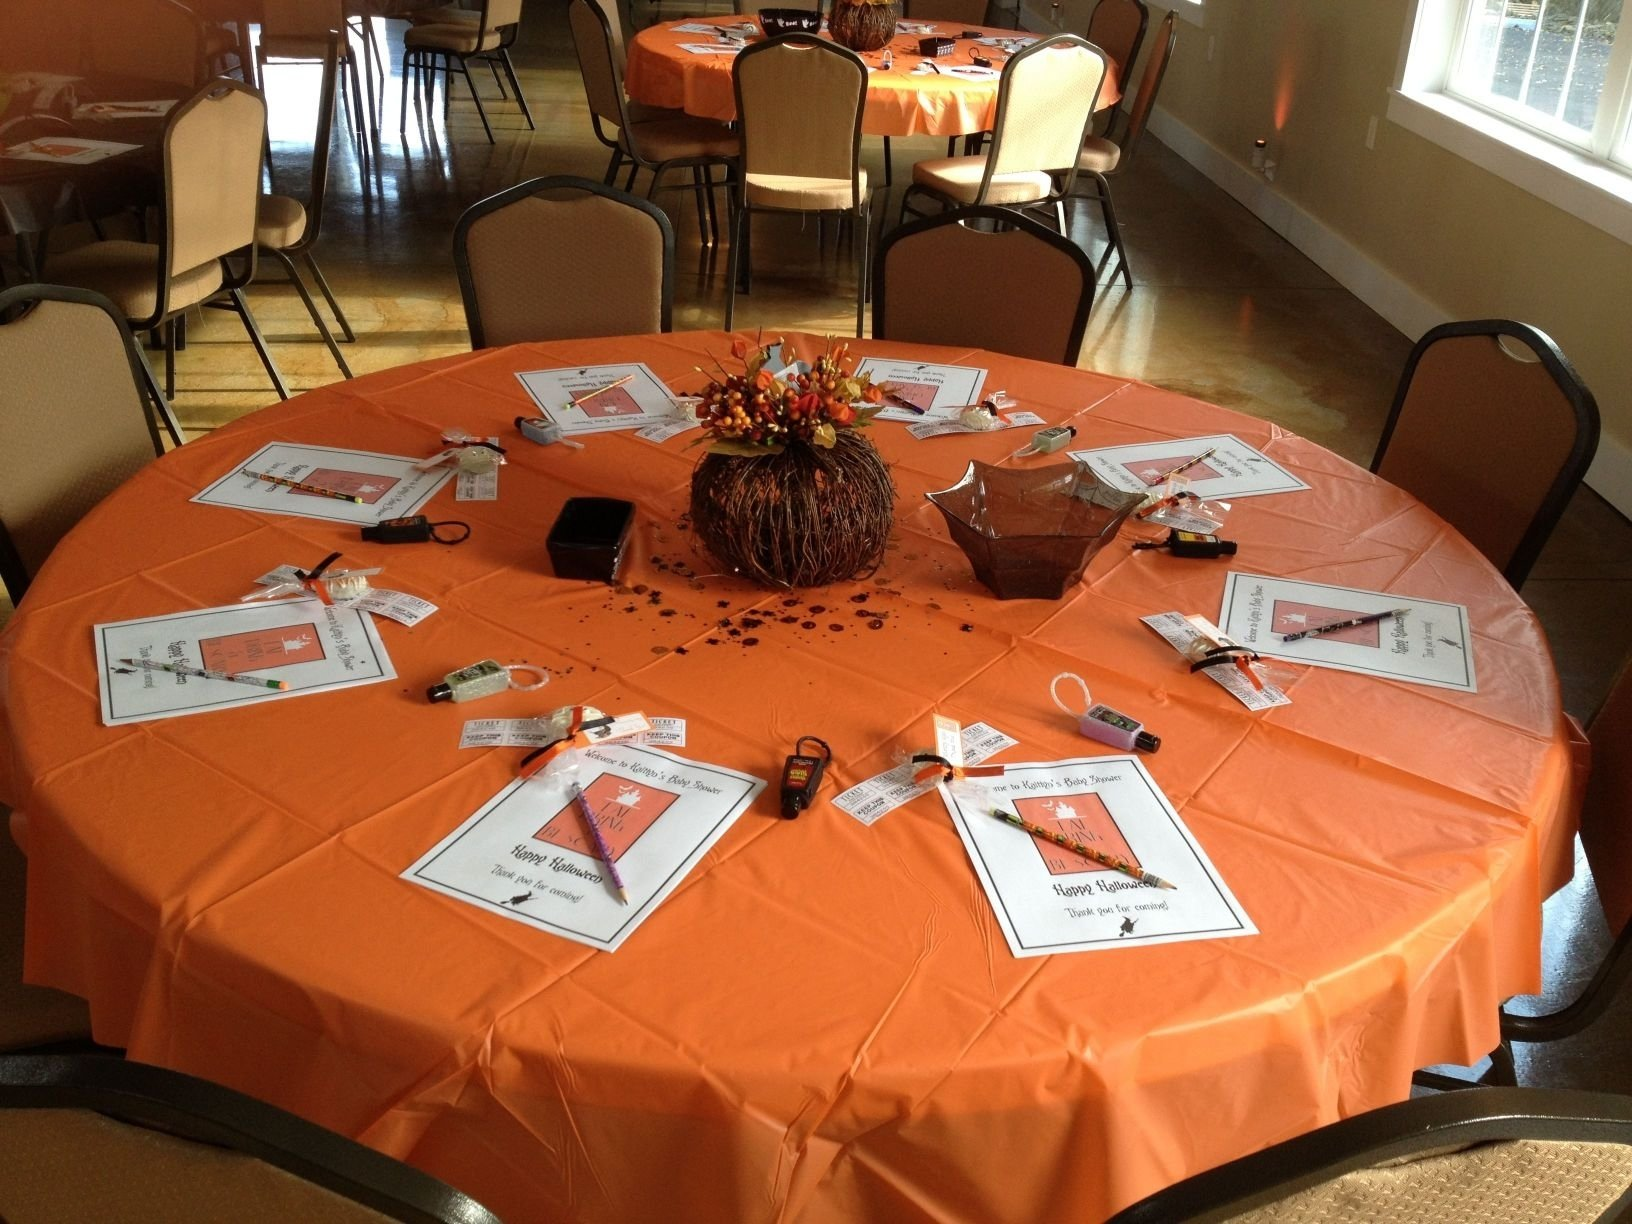 10 Fantastic Halloween Themed Baby Shower Ideas shocking halloween themed baby shower table setup our events picture 2020